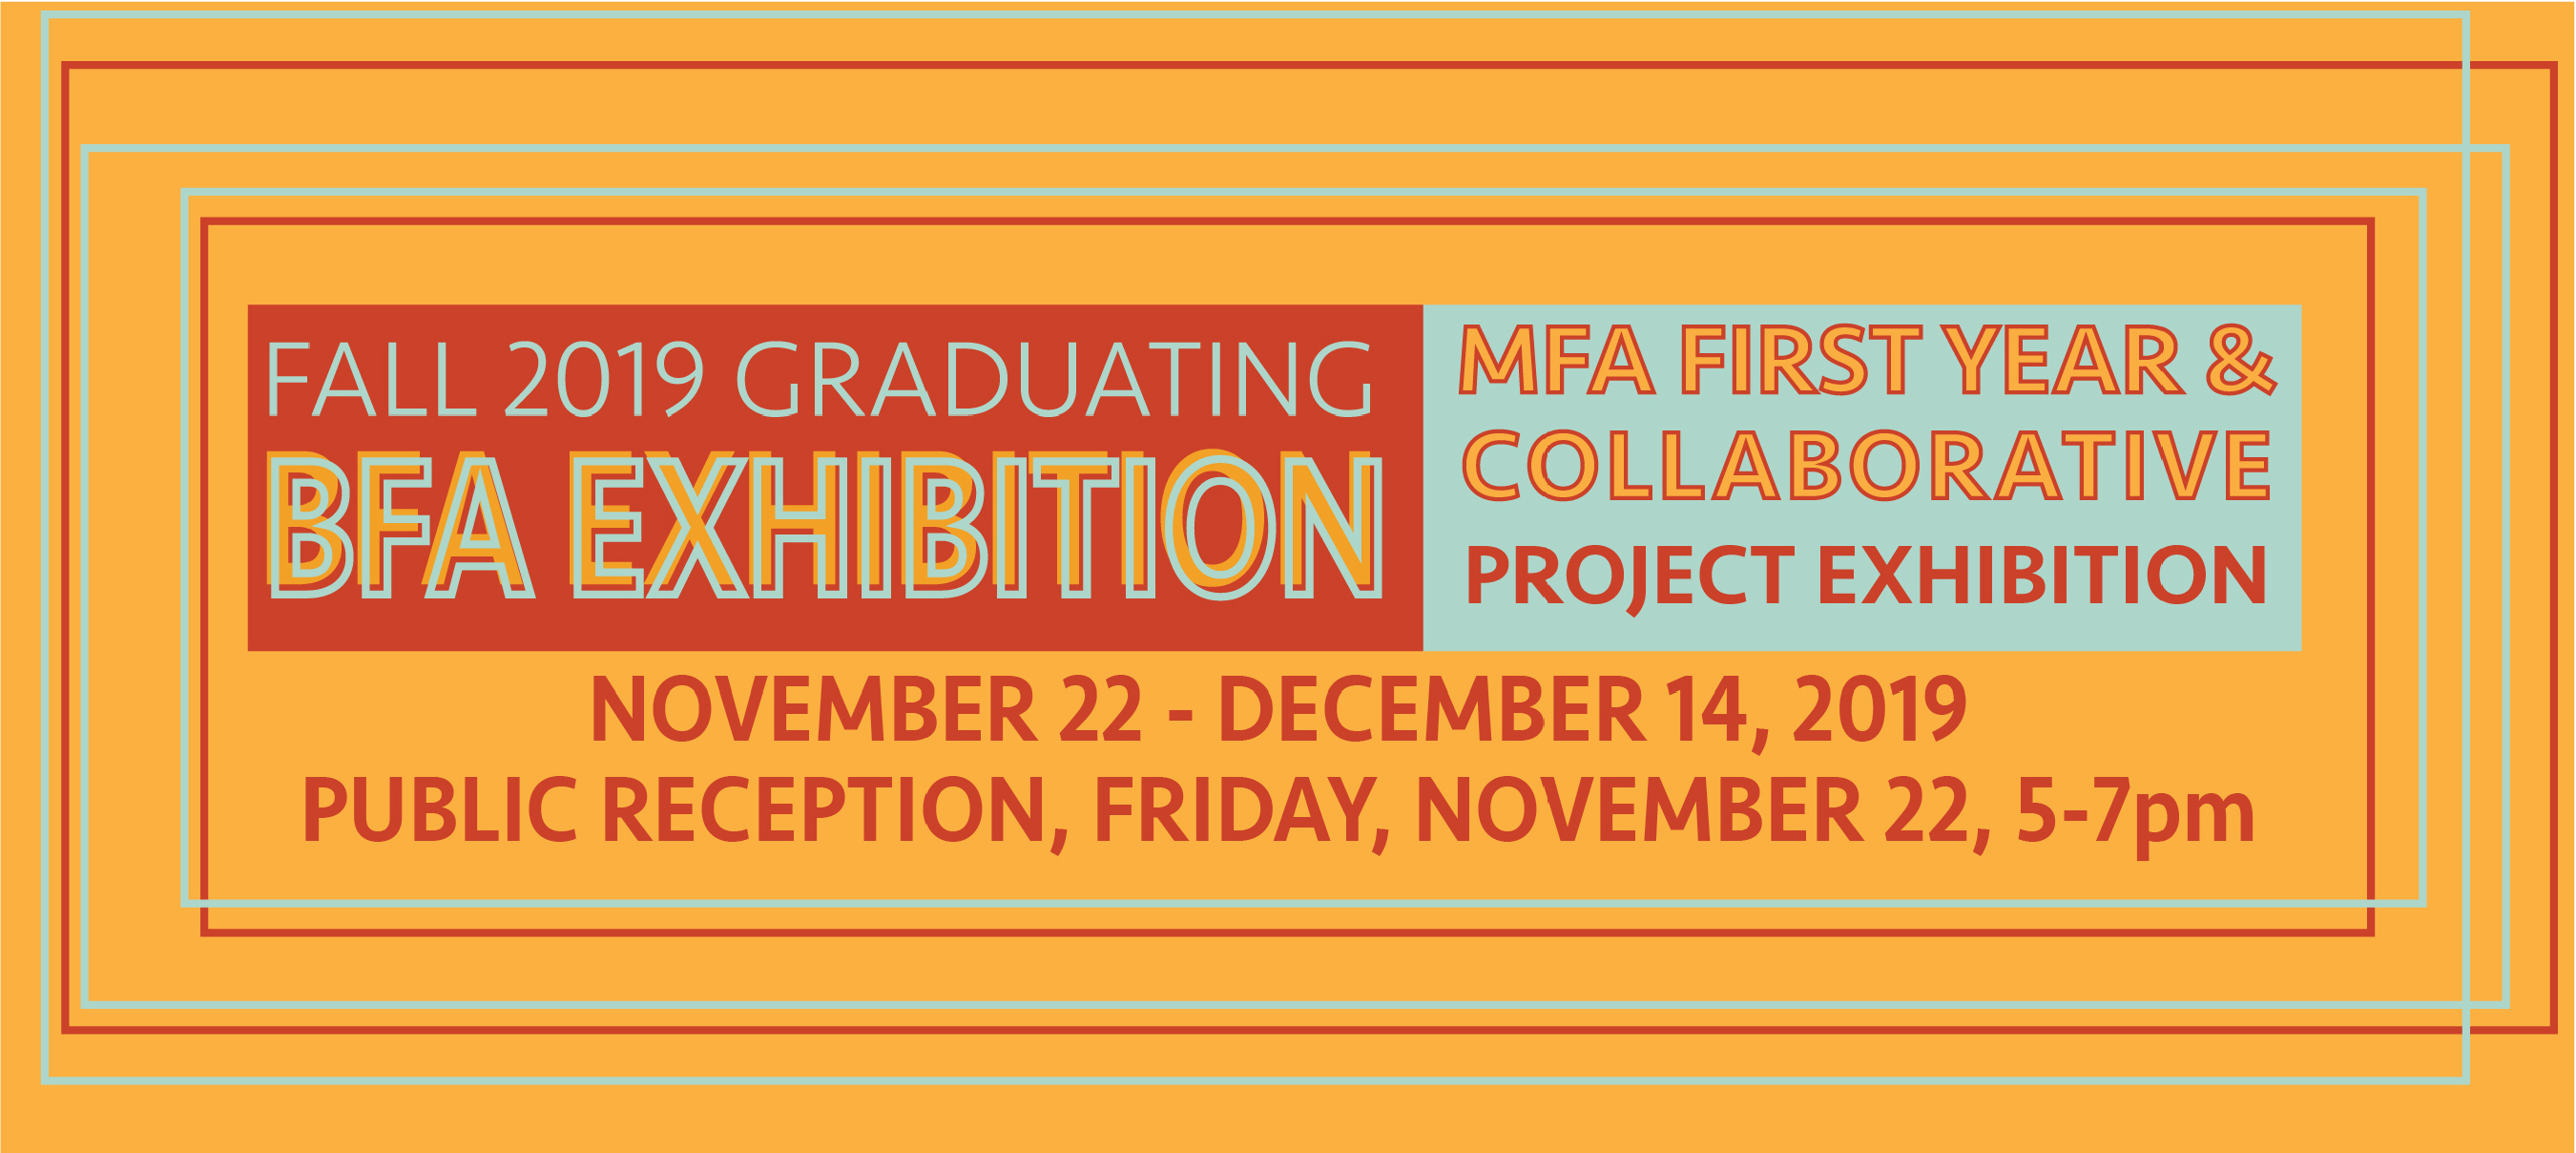 Fall 2019 Graduating BFA Exhibition. MFA First Year & Collaborative project exhibition.